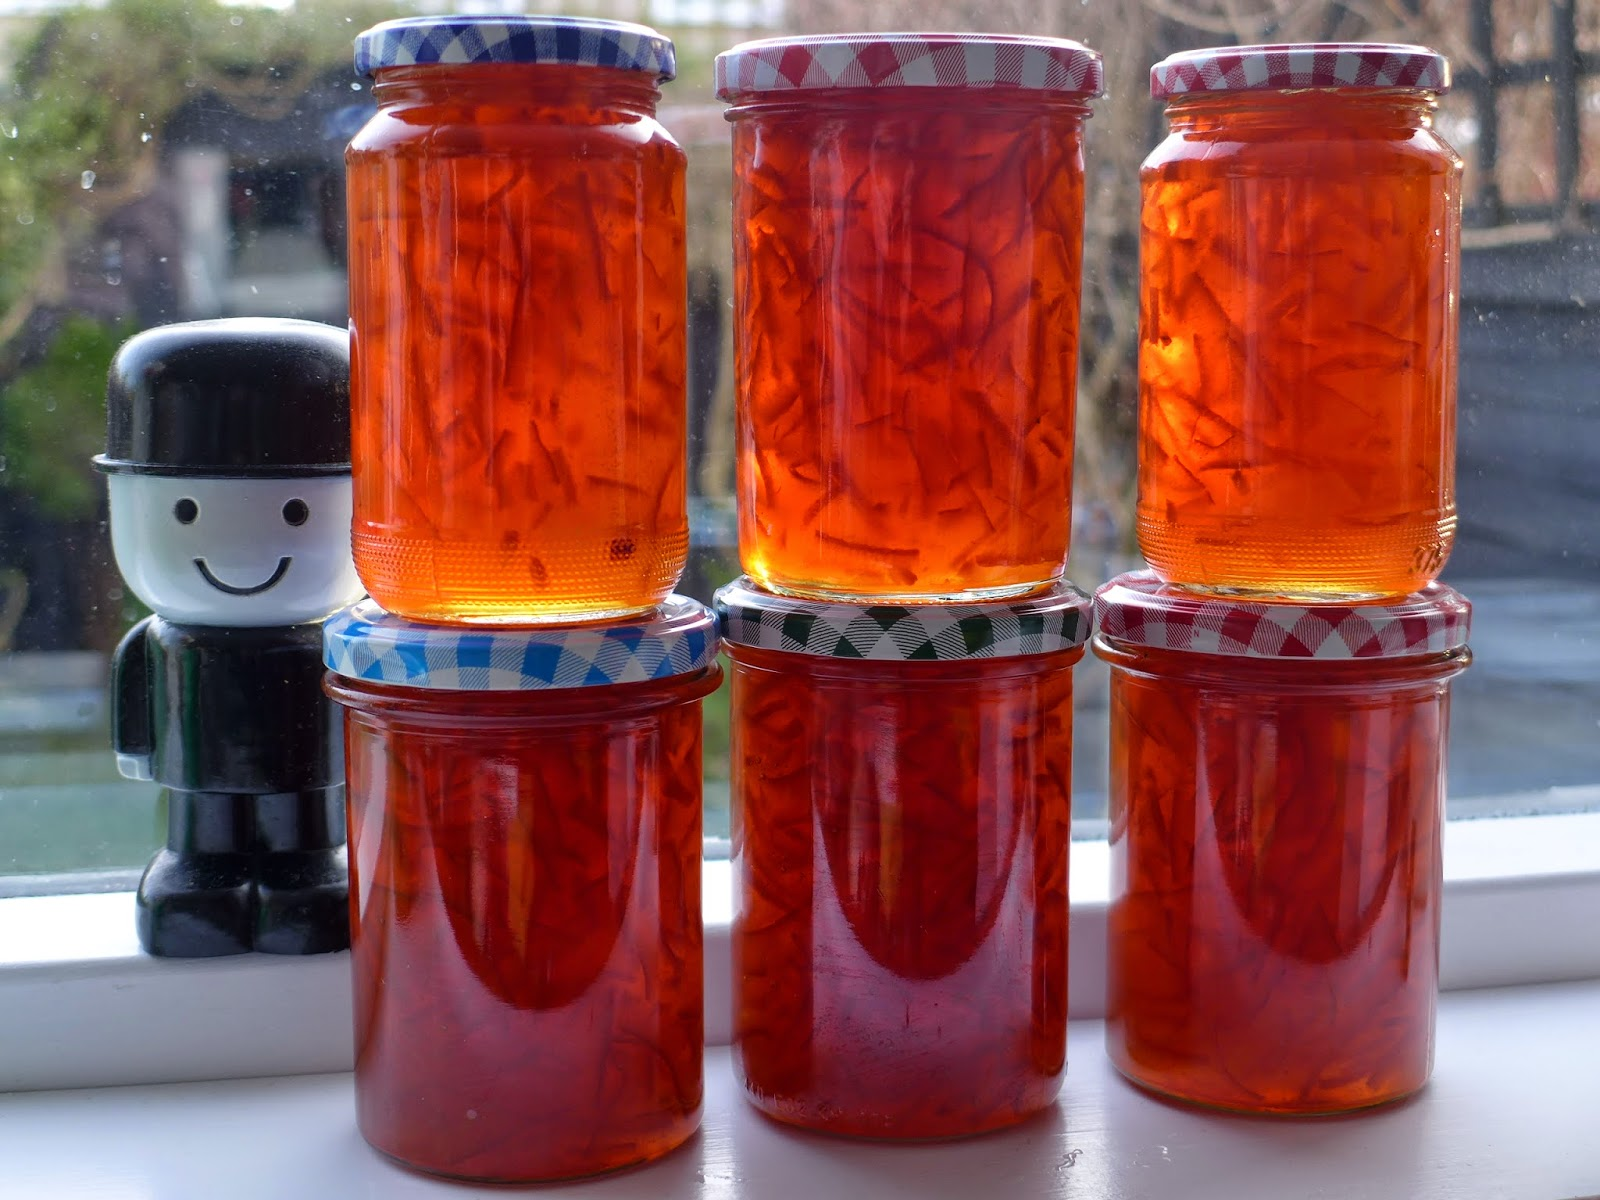 Seville Marmalade, Paddington Bear, homemade jam, artisan, thin cut, Feeding the Eye